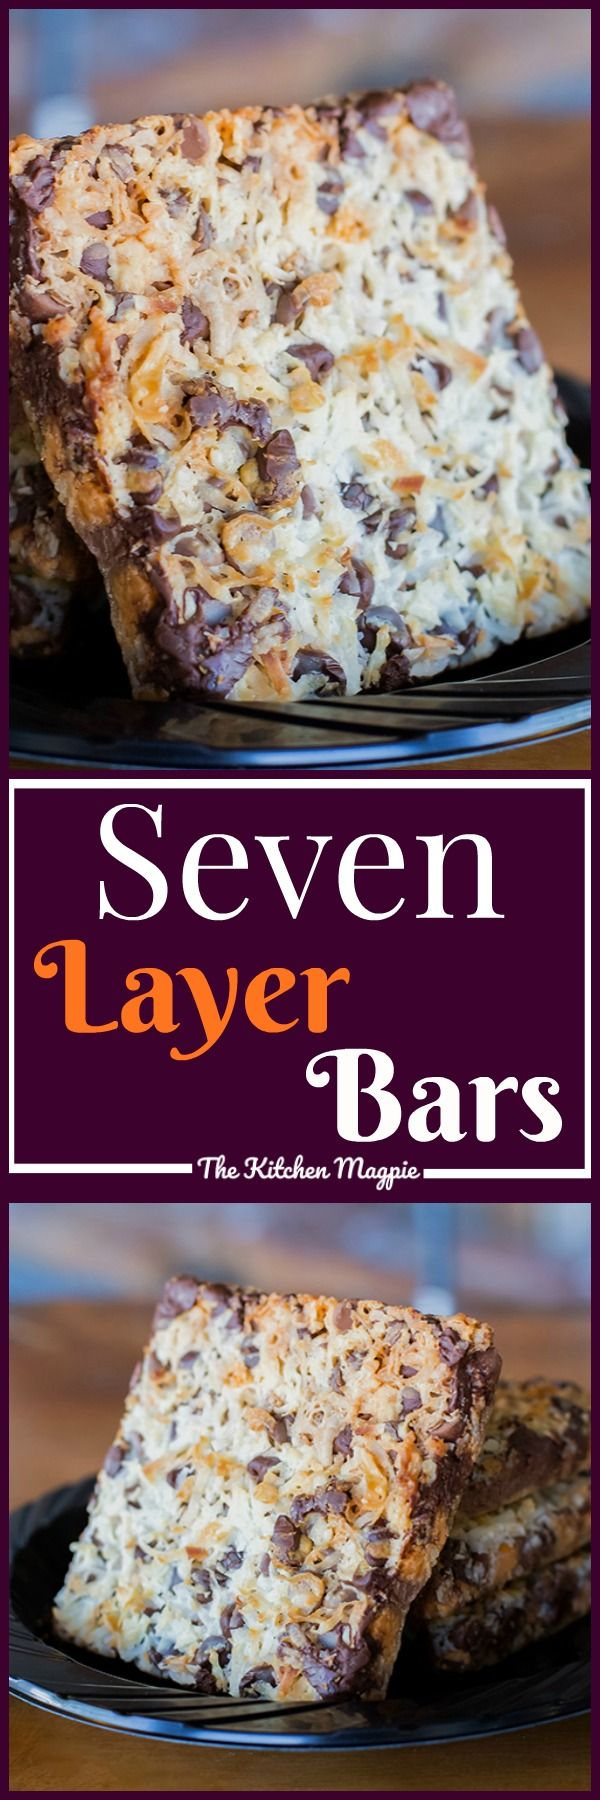 You can't go wrong with a classic seven layer bar recipe! Perfect for the holidays or just when you have a sweet tooth!